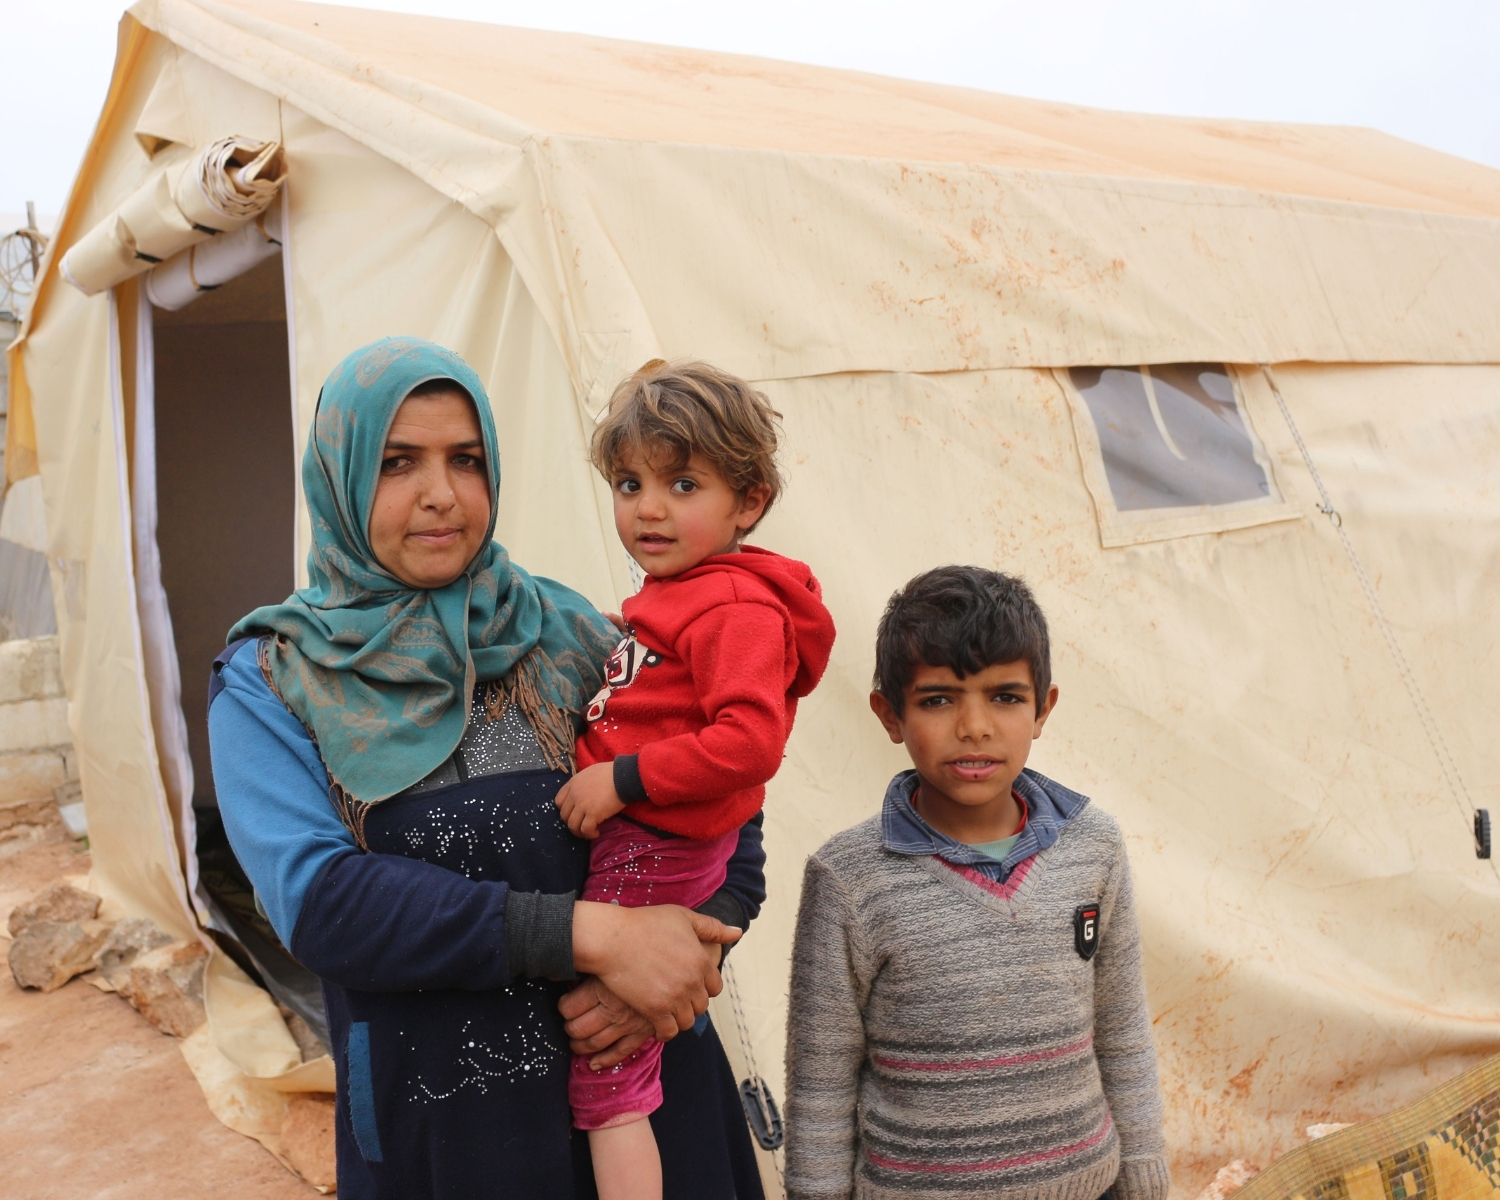 Syrian family outside tent